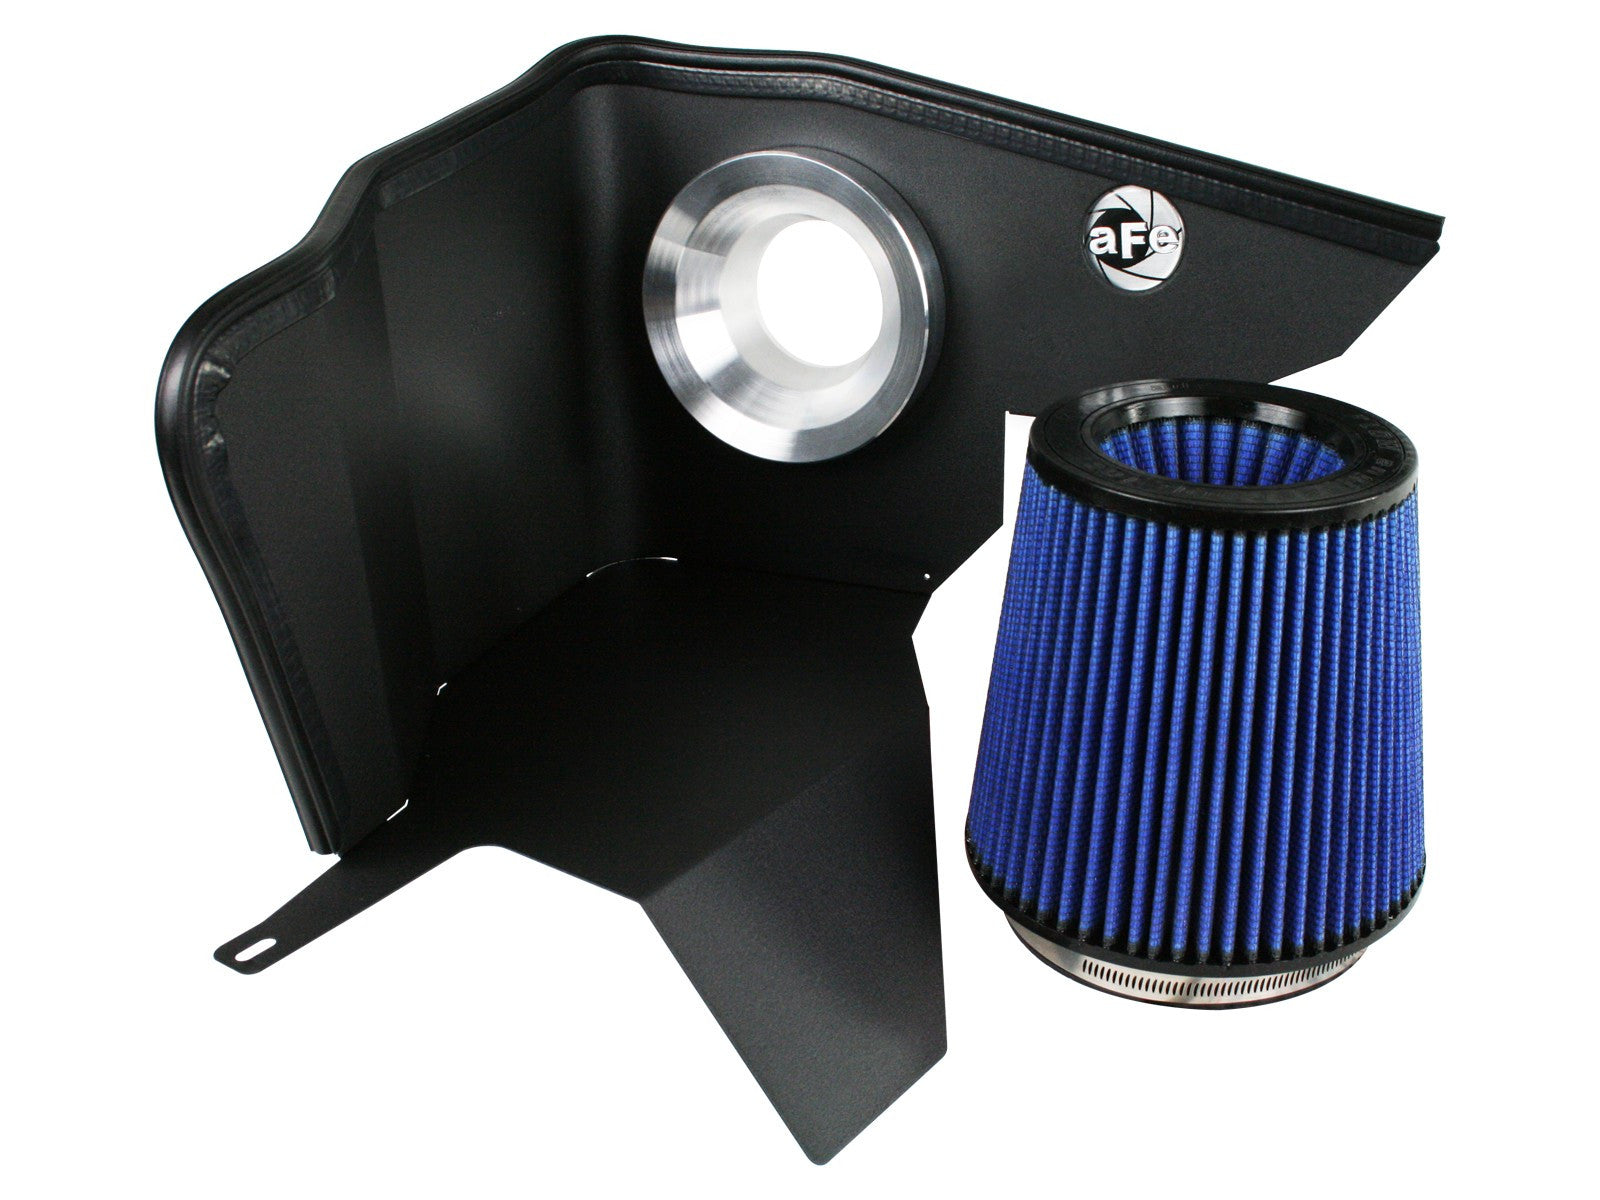 aFe POWER E39 530i Magnum FORCE Stage-1 Pro 5R Cold Air Intake System - Bimmer Performance Center